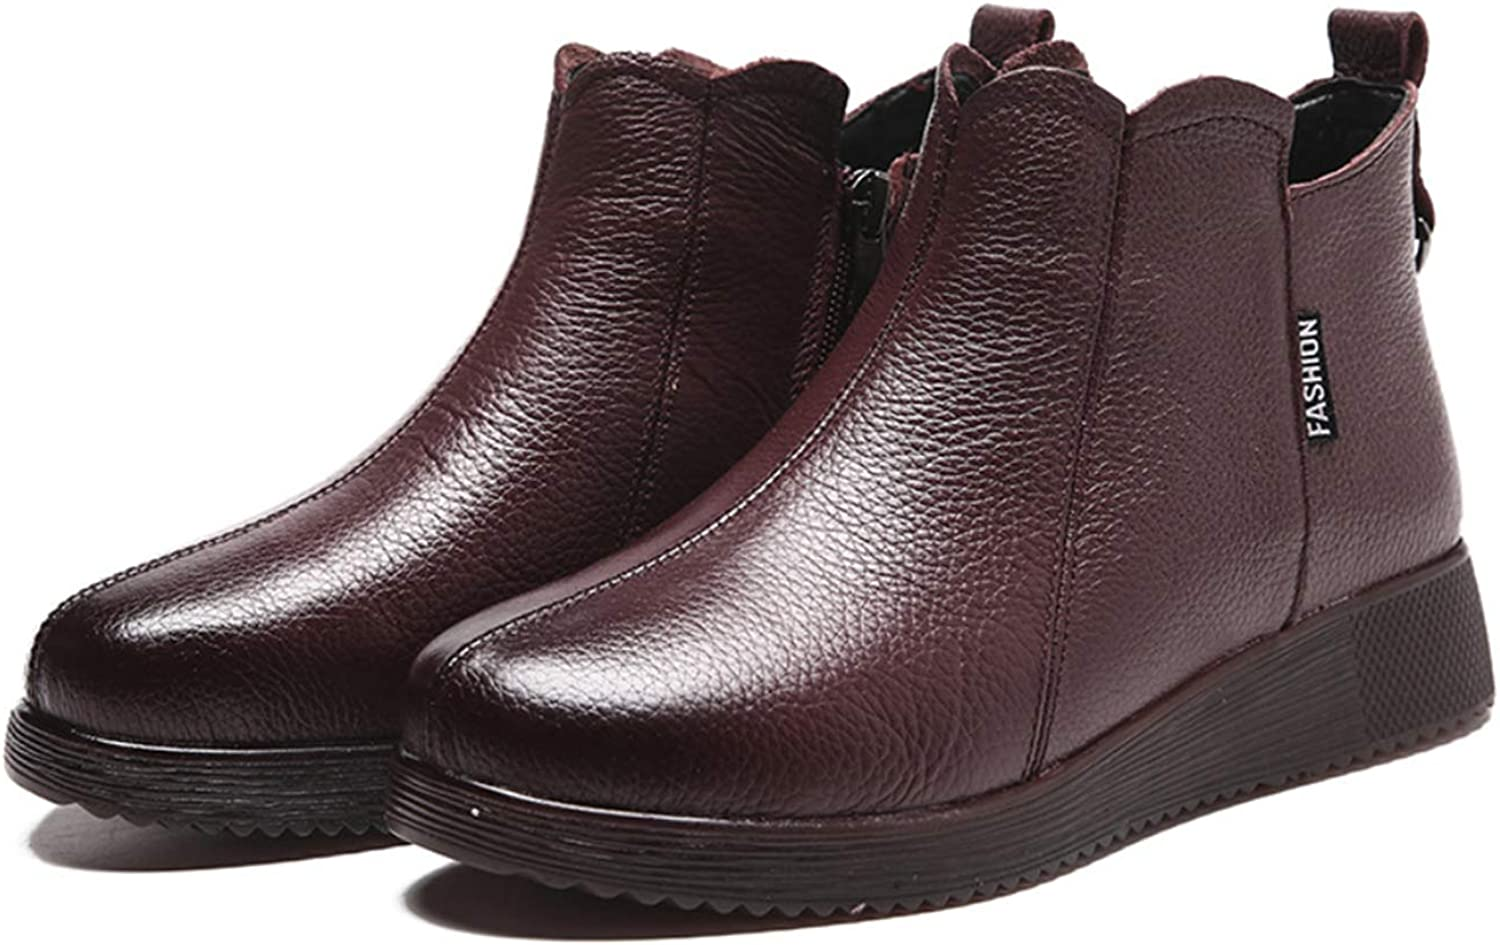 Women's ankle boots full round leather retro booties in upper layer European and American style national autumn and winter new flat shoes,Purple,39EU